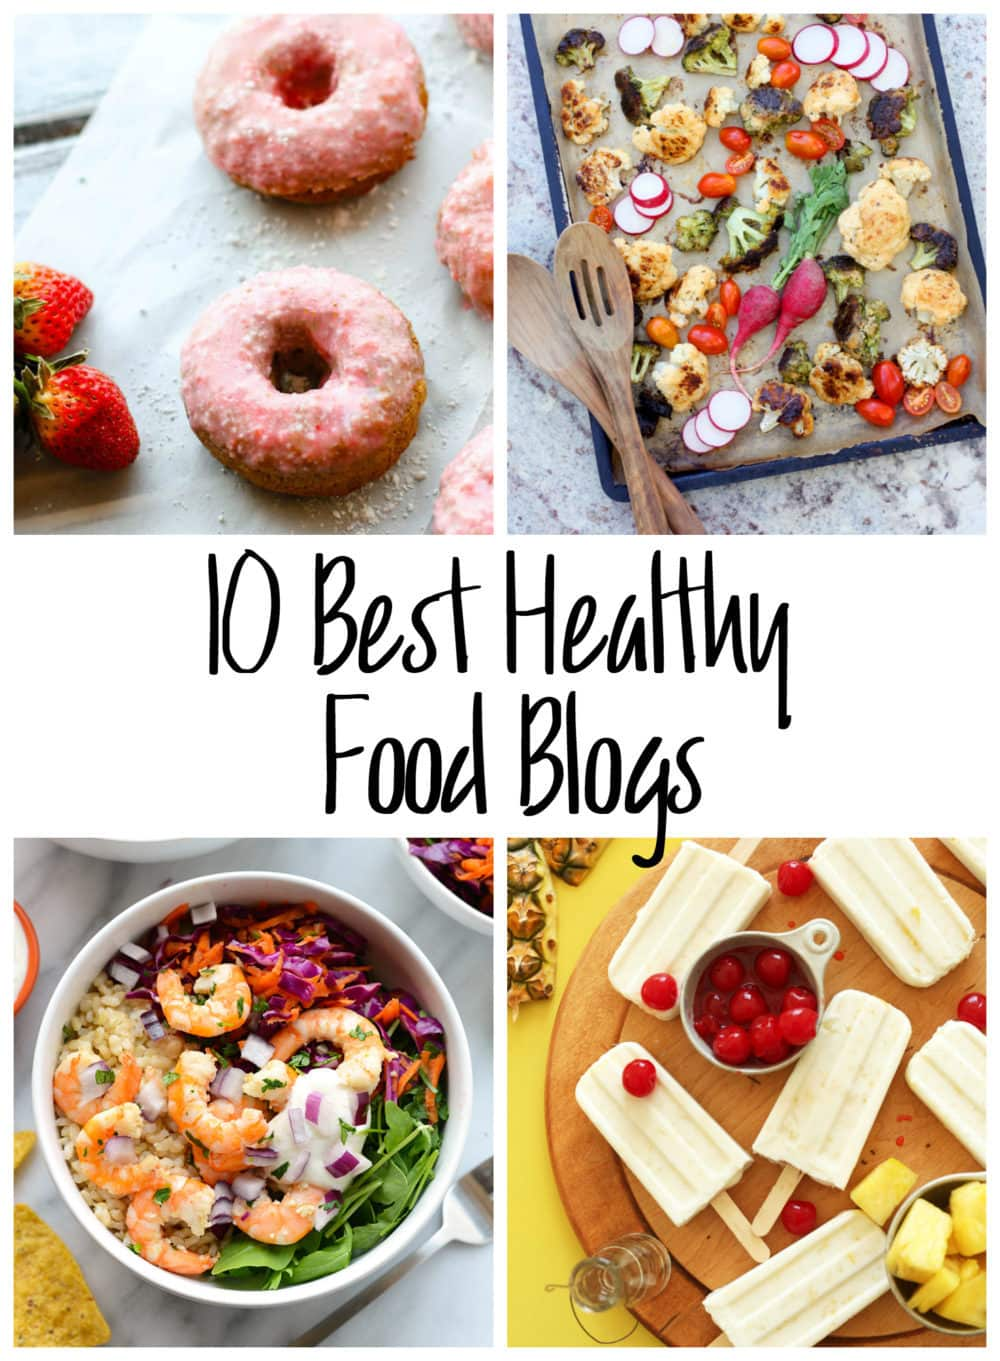 Blog: 10 Best Healthy Food Blogs • The Fit Cookie